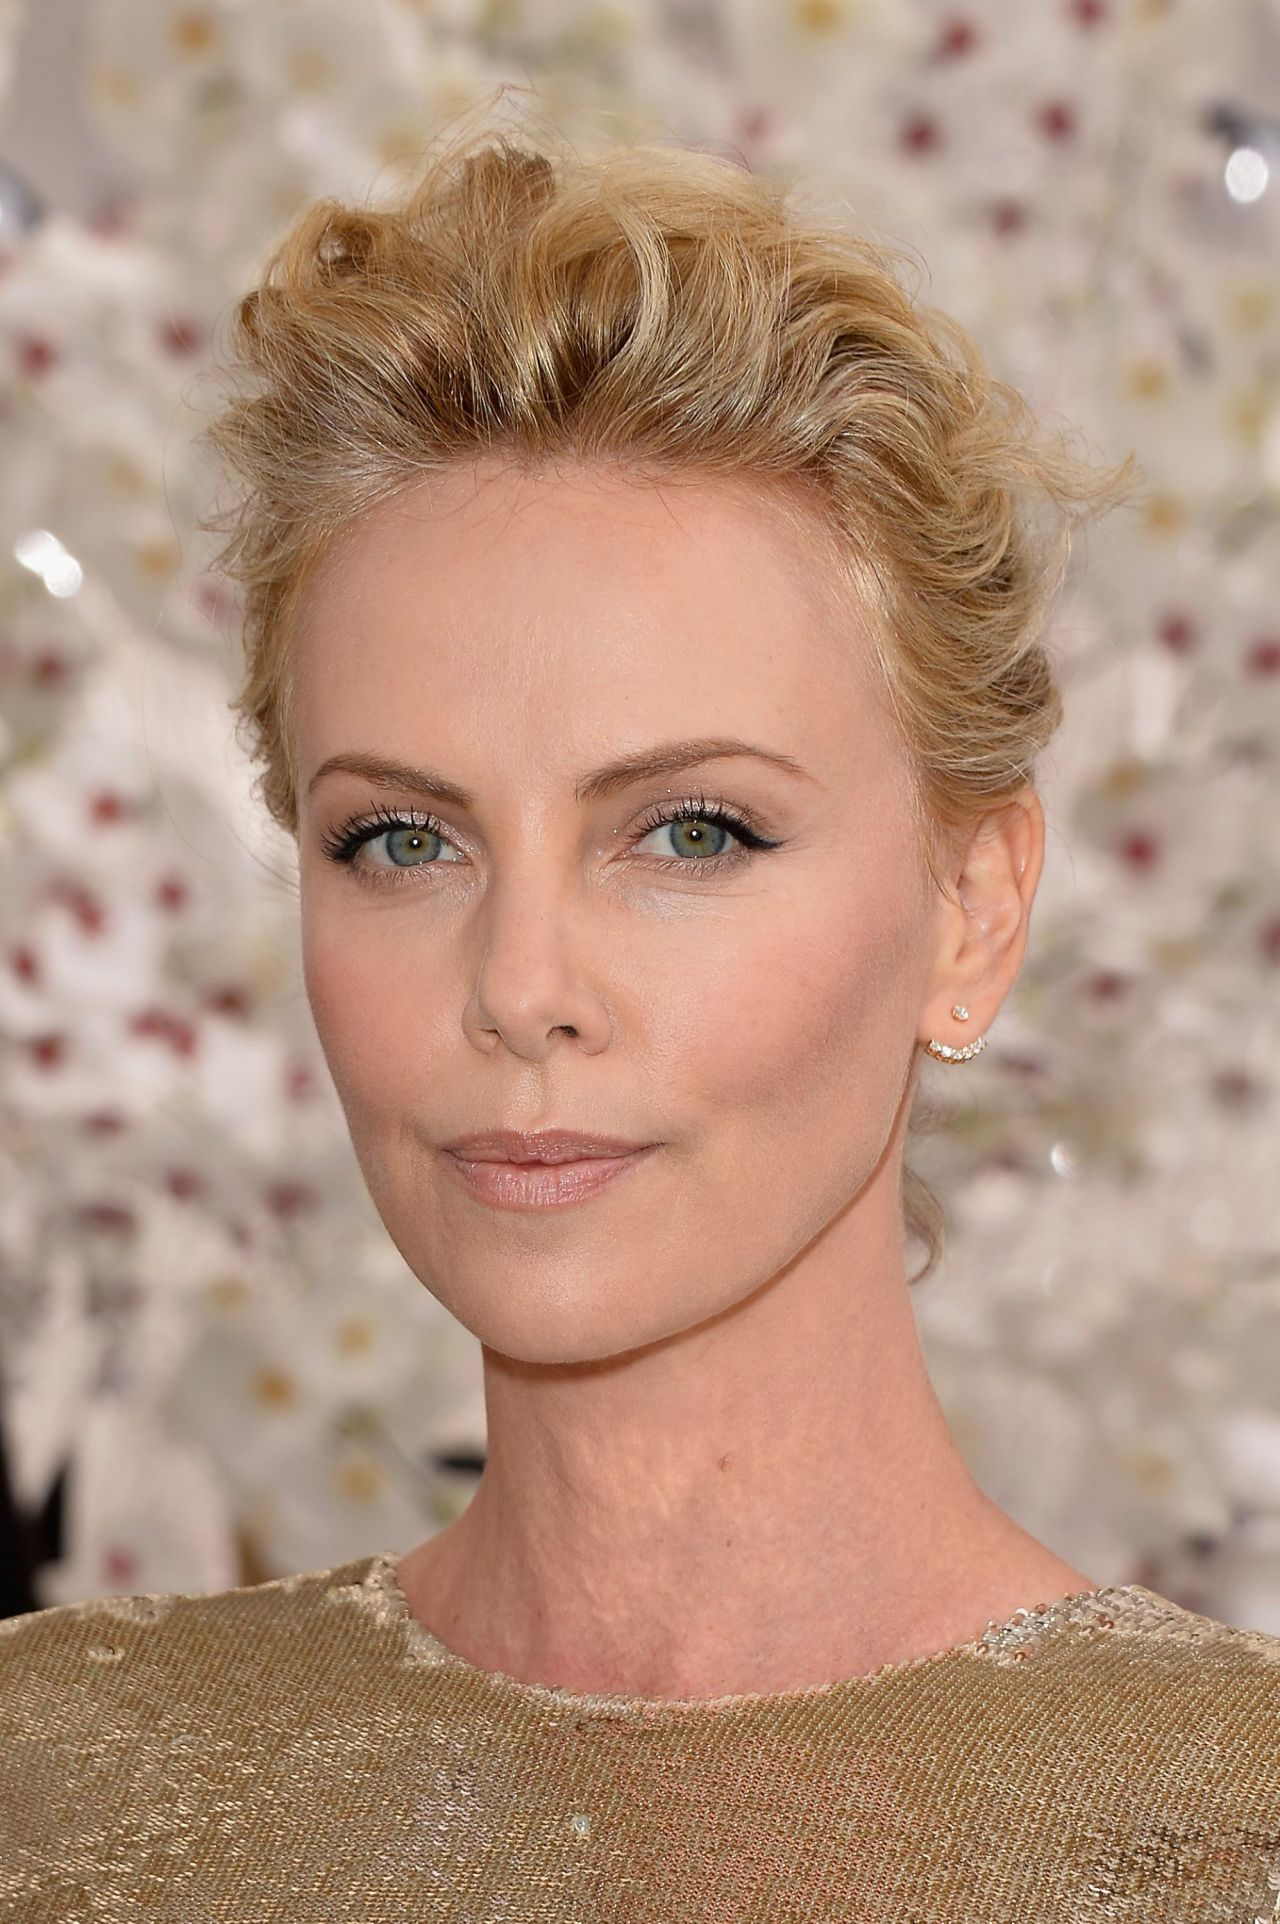 Charlize Theron In Versace For British Vogue: Christian Dior Fashion Show During Paris